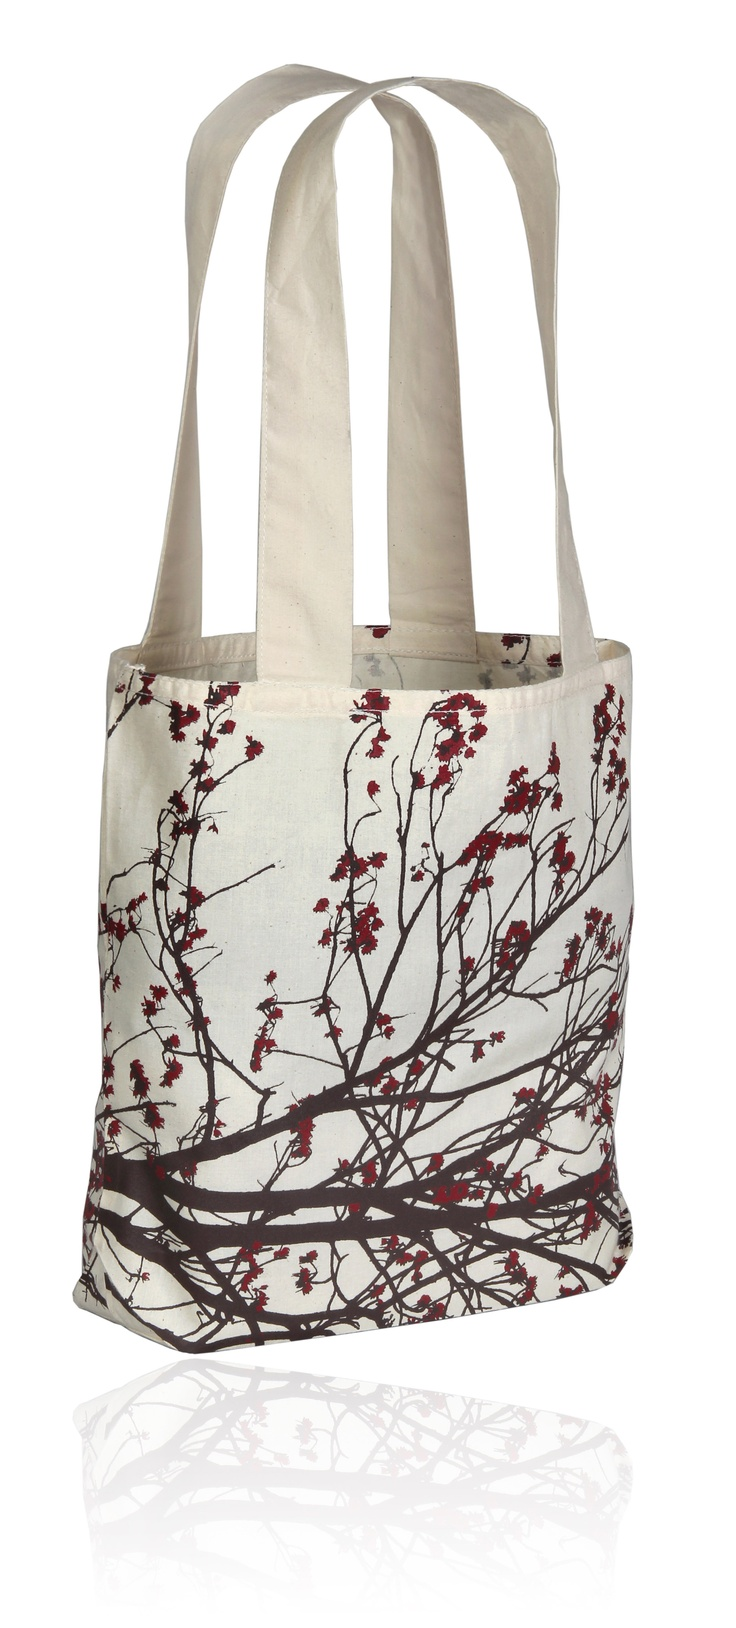 Amity Autumn - a simple but popular cotton bag. Made by Freeset.